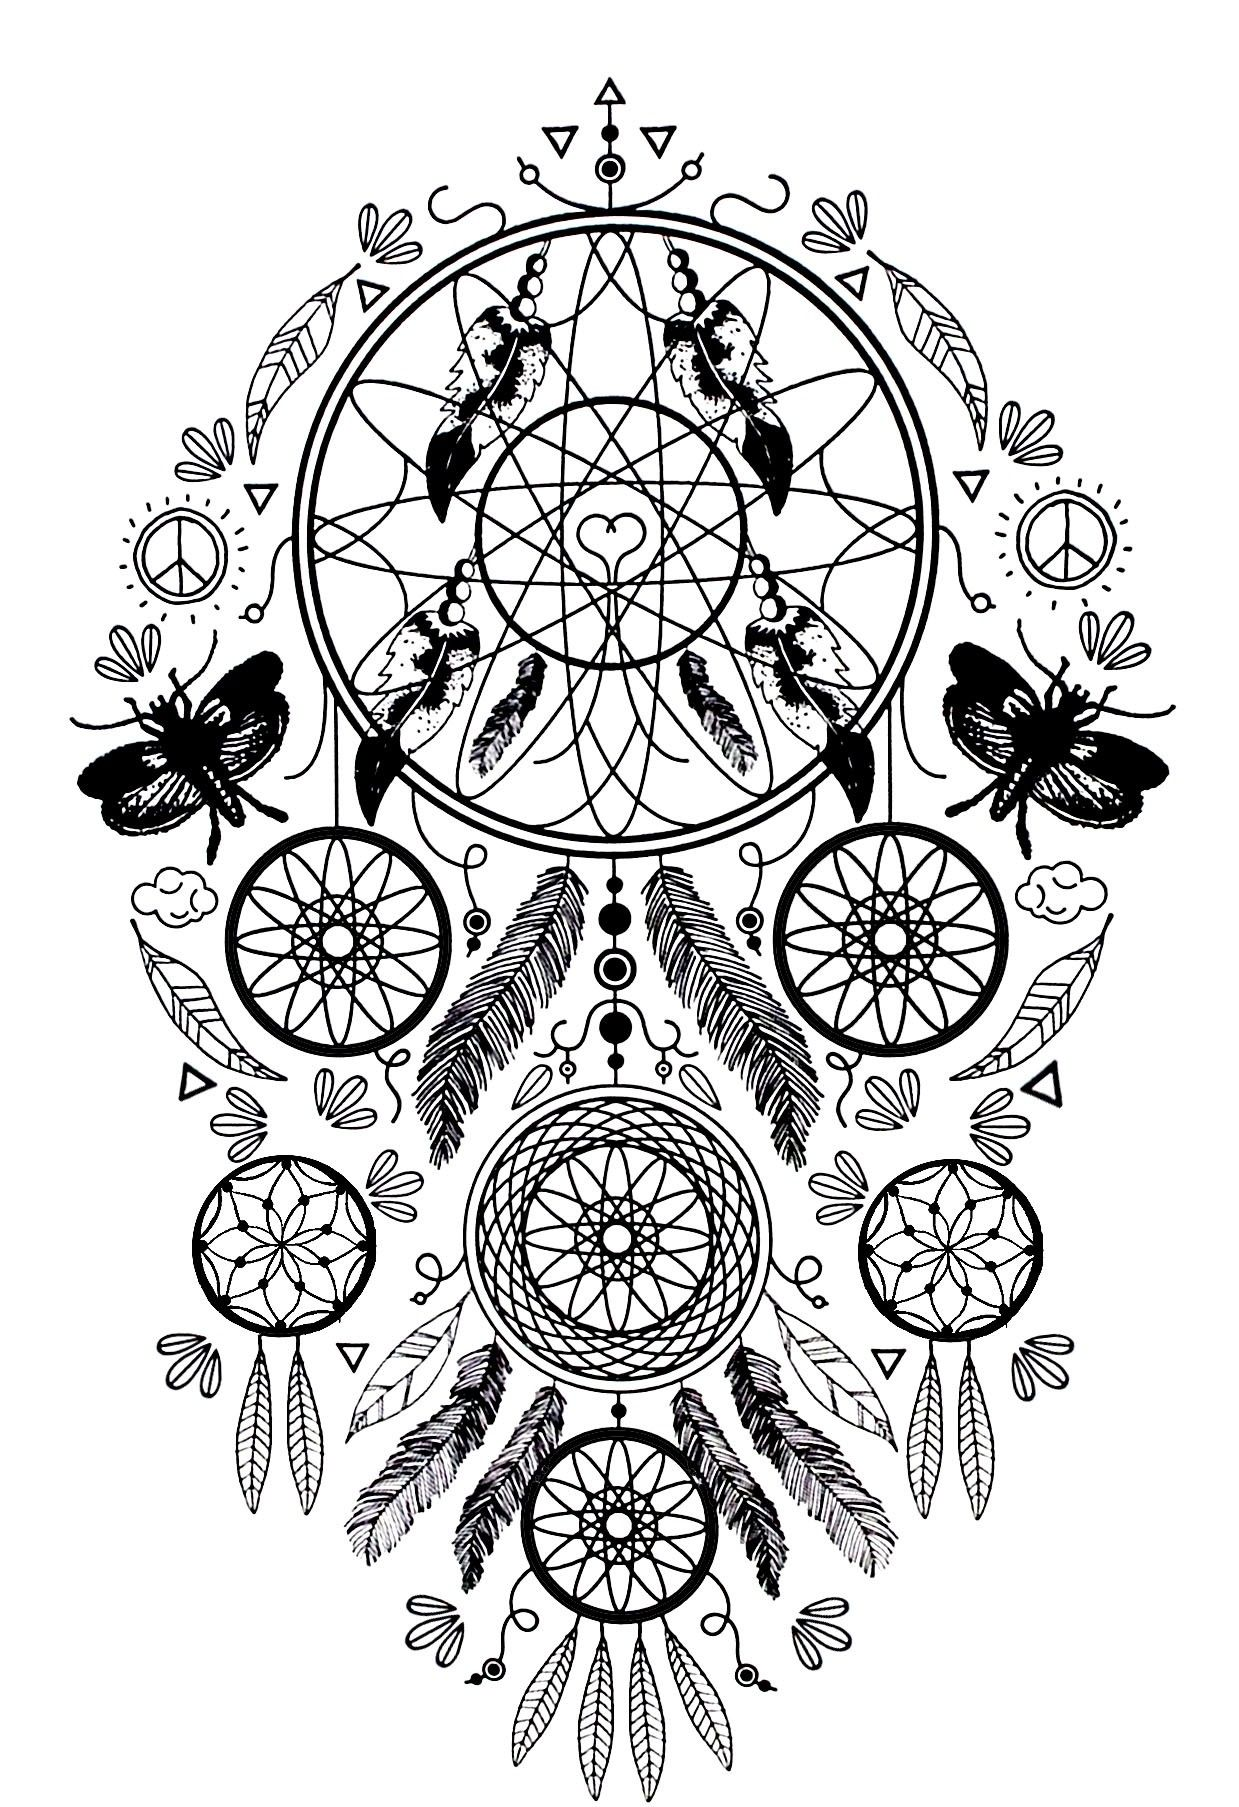 Free Dreamcatcher Coloring Pages, Download Free Clip Art, Free ... | 1807x1239